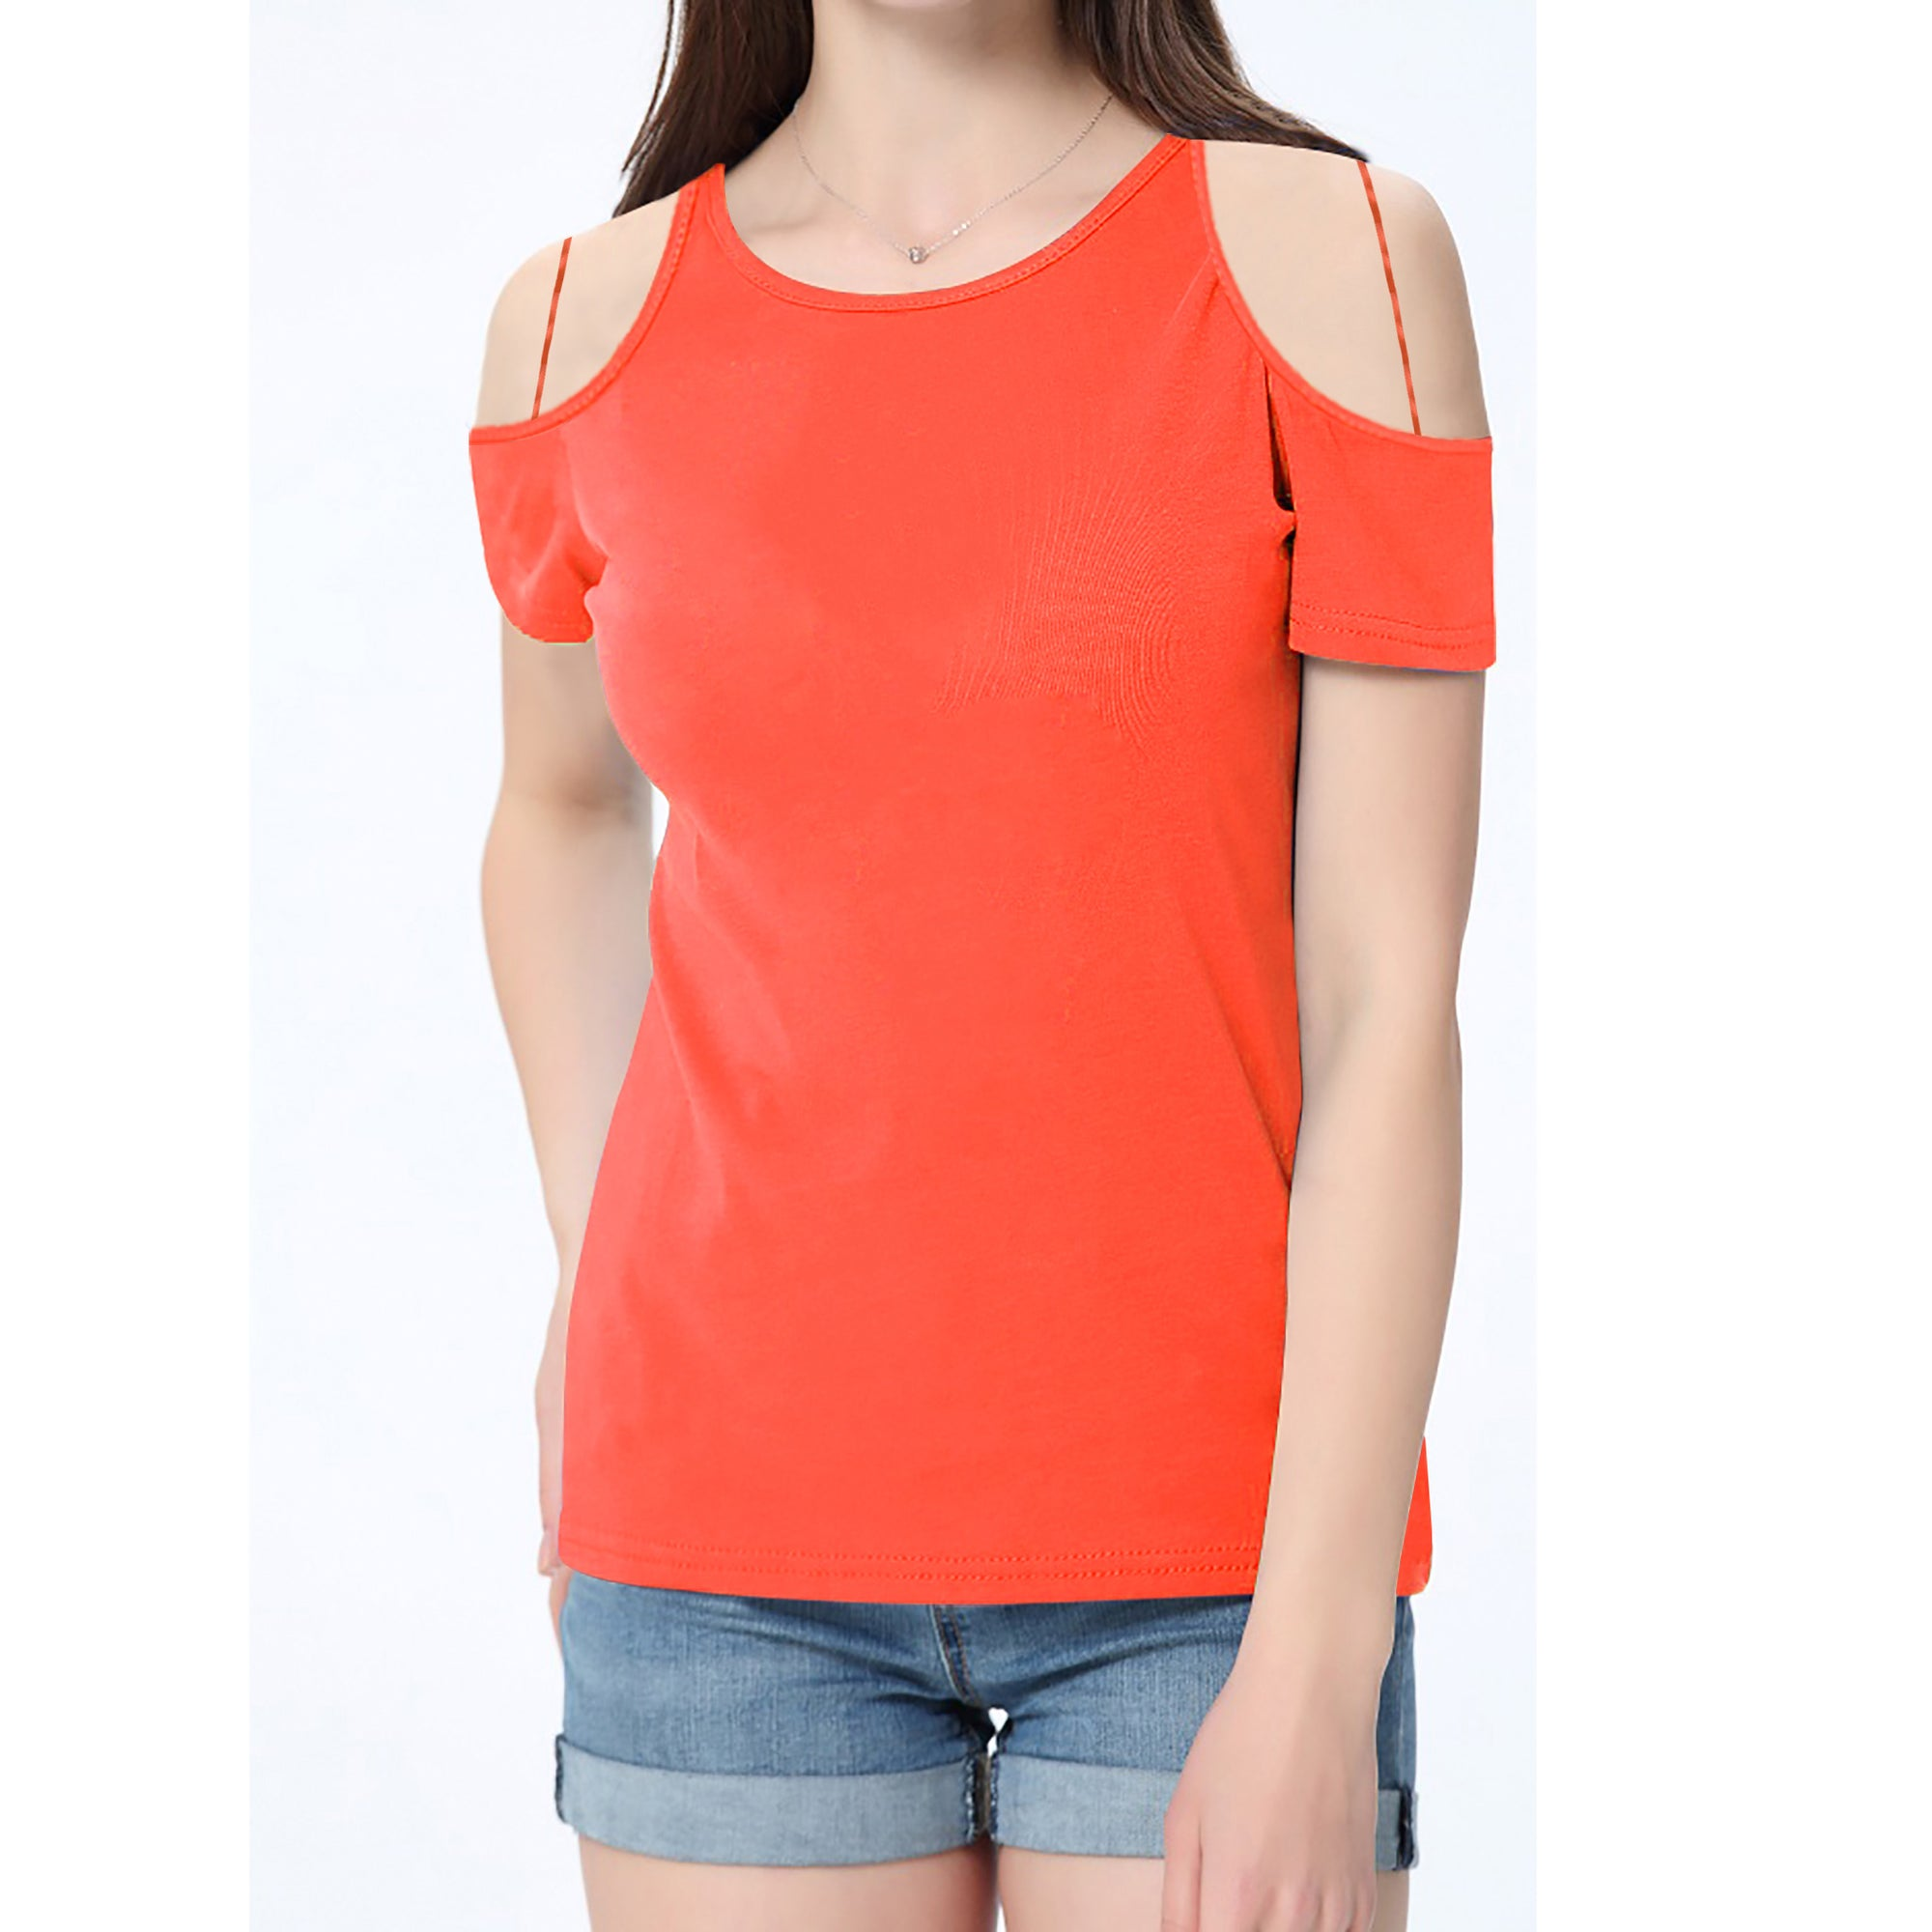 brandsego - River Island Shoulder less Burnout Blouse For Ladies-Orange-BE7418